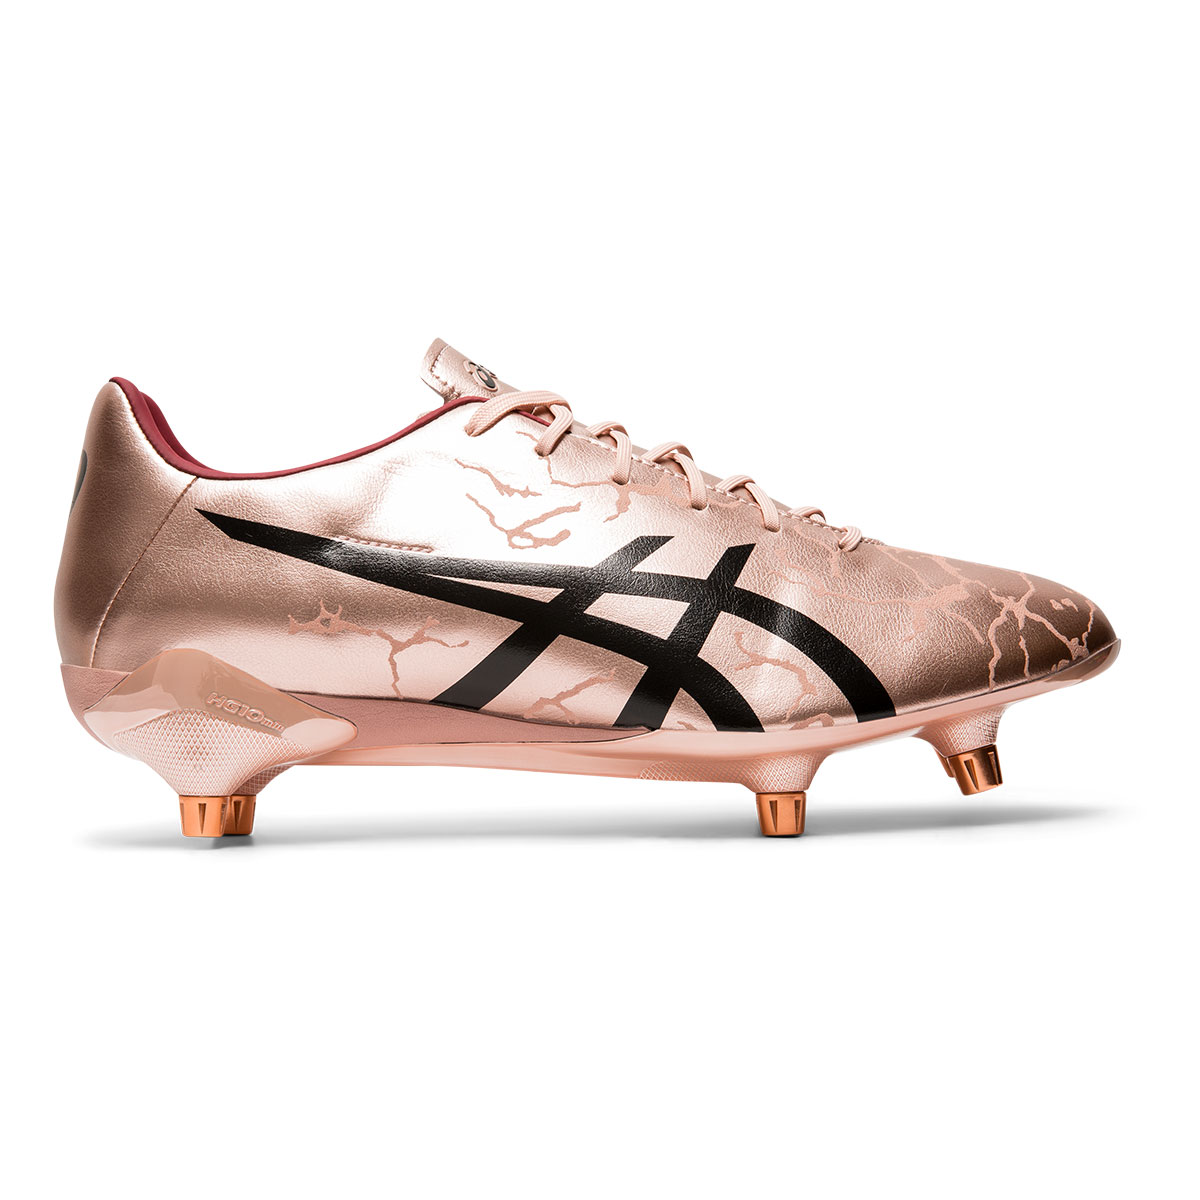 outlet sale special buy buying now Asics Menace 3 Rugby Boots